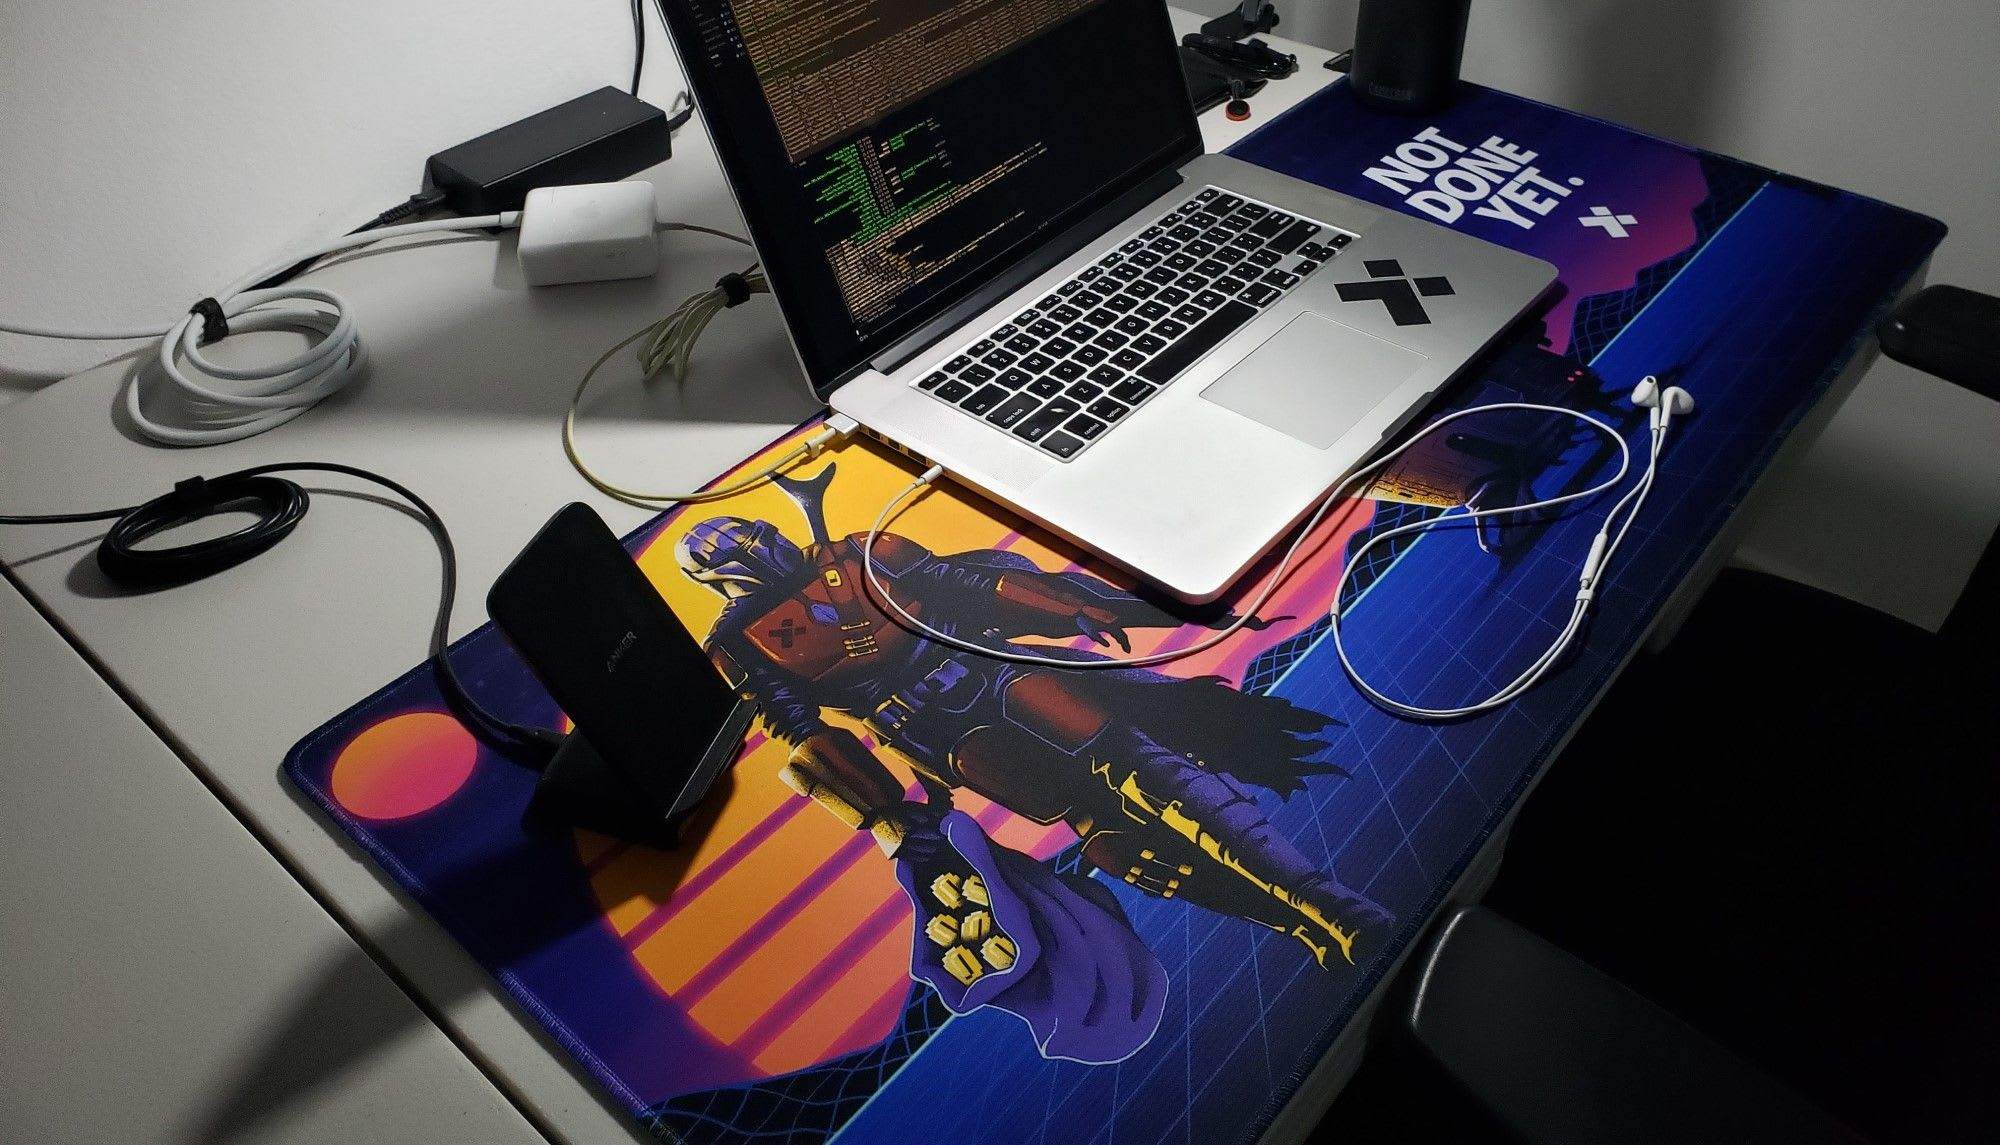 a desktop mat with a smartphone and a laptop on it